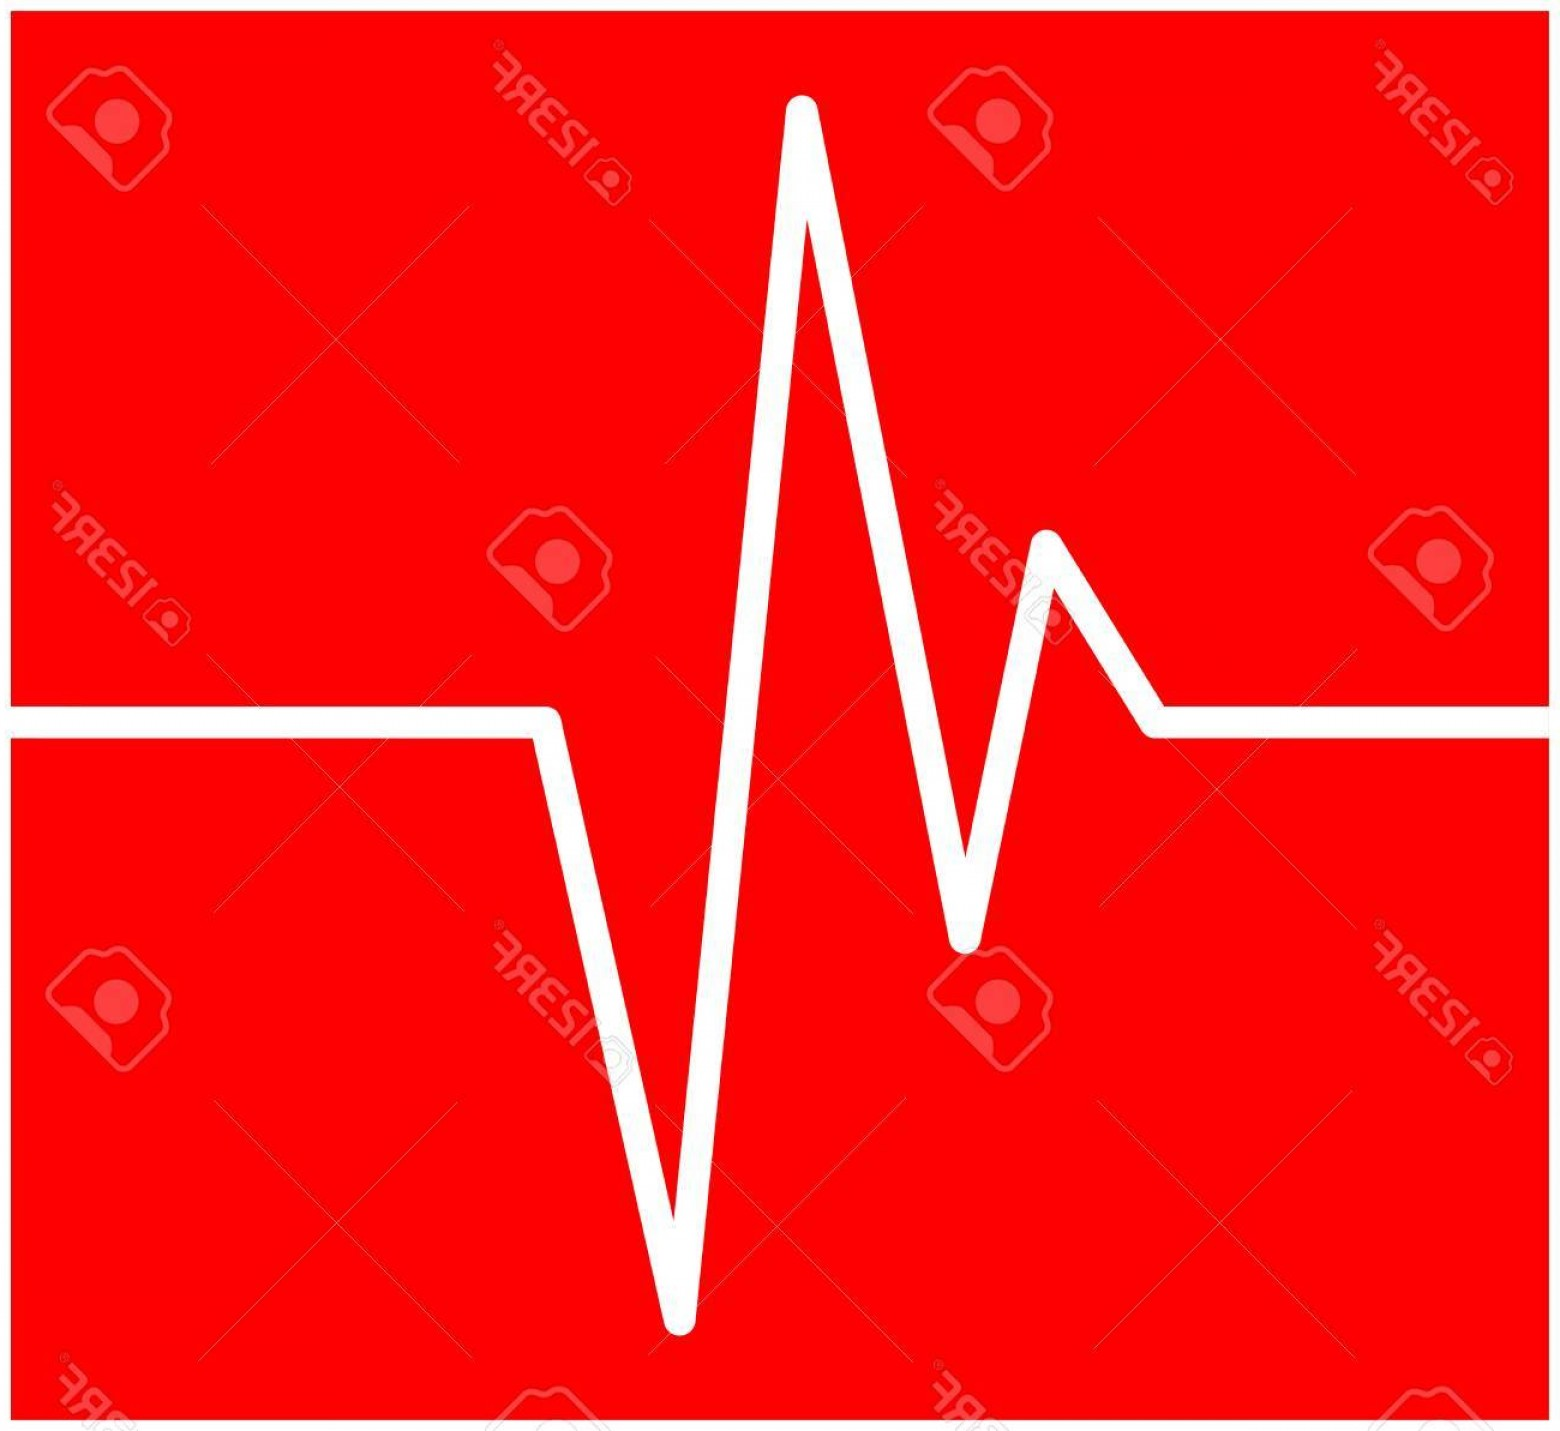 Heart With EKG Line Vector: Photostock Vector Heart Rhythm Ecg Line Vector Symbol Icon Design Beautiful Illustration Isolated On Red Background